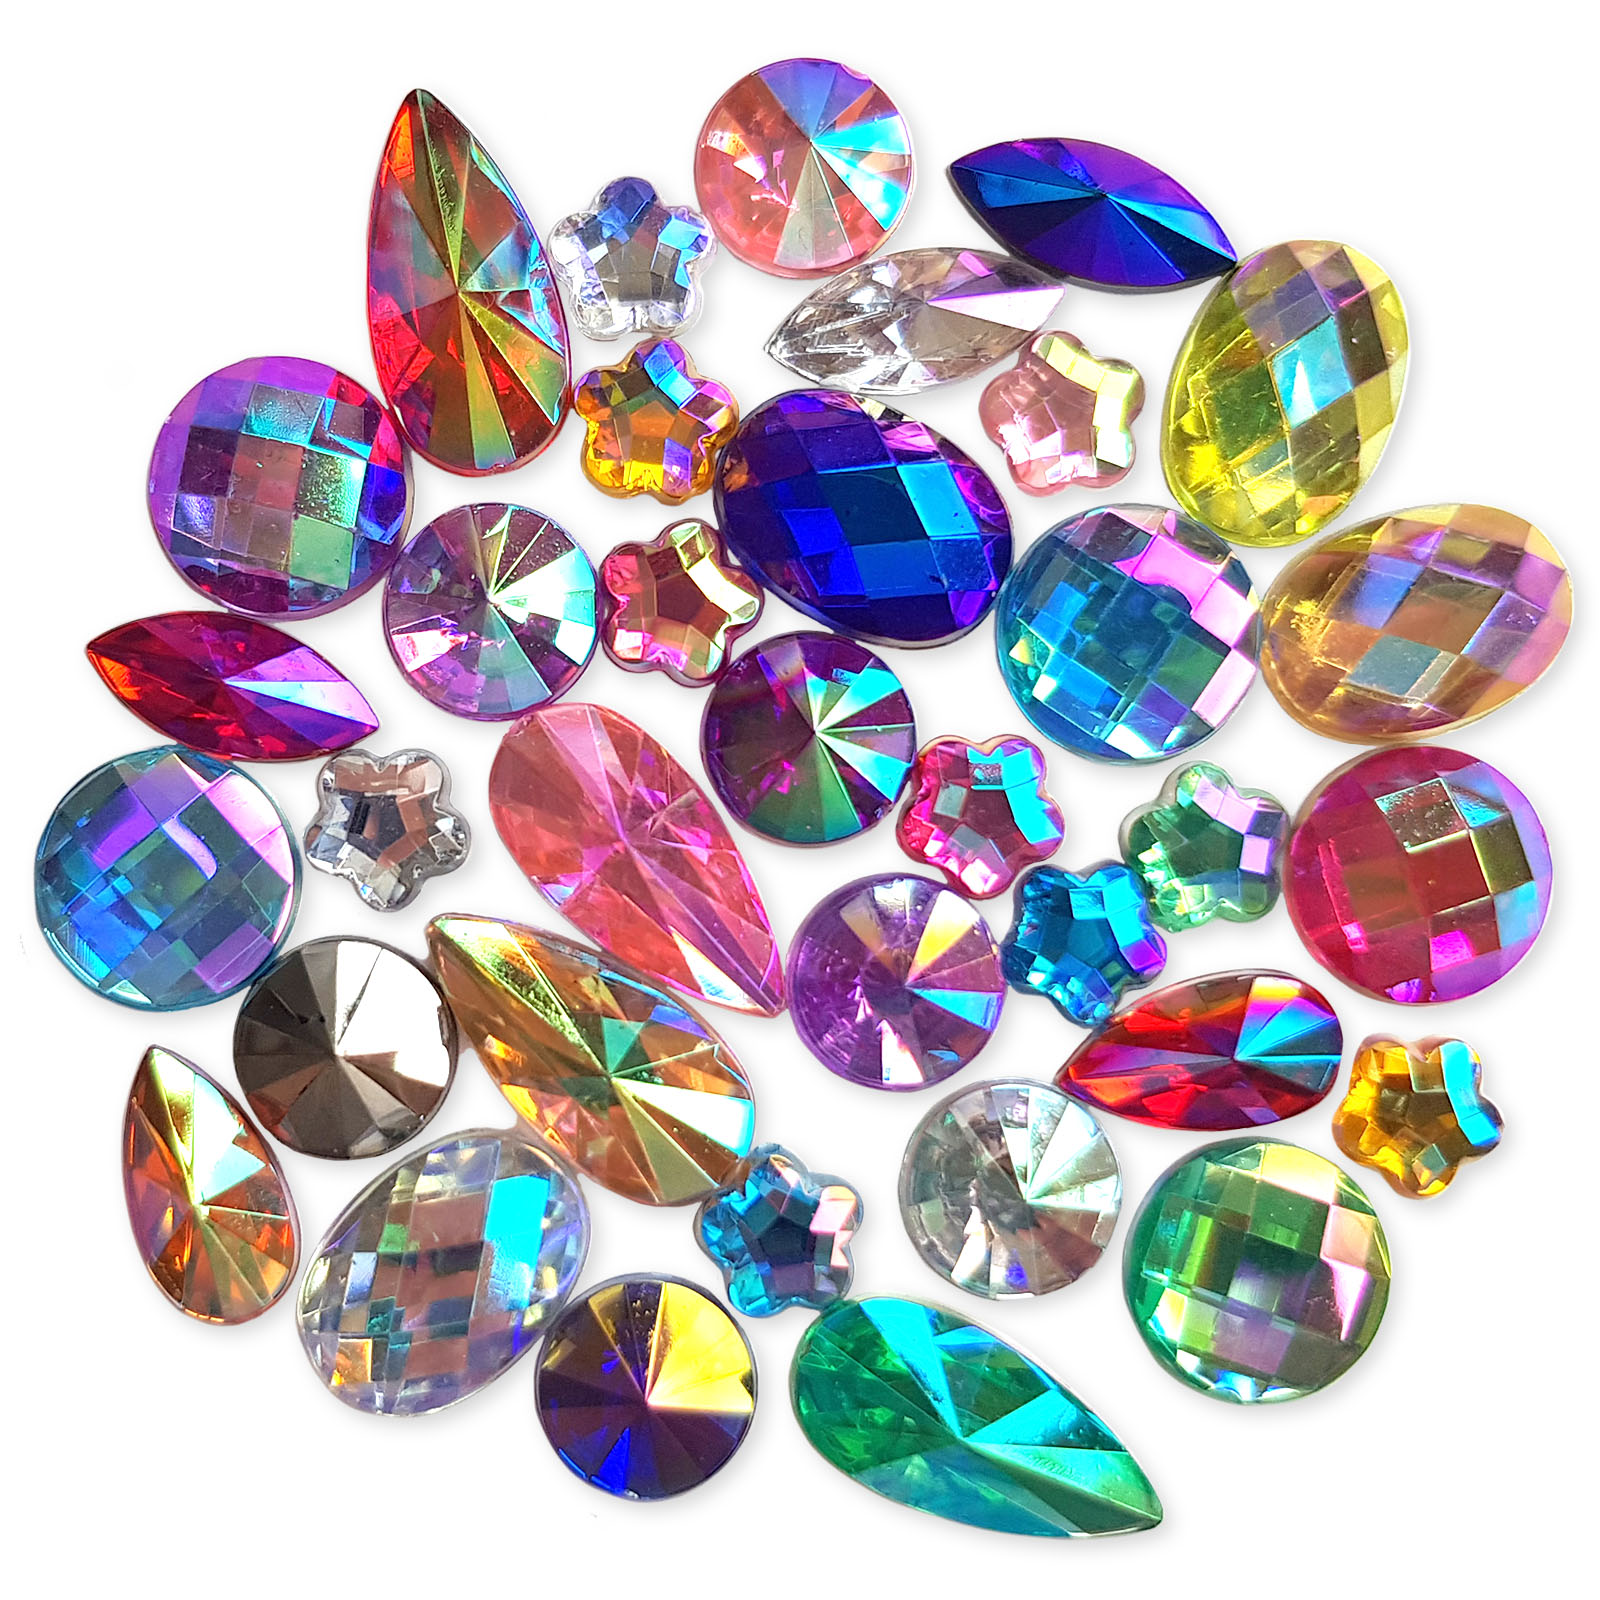 50pcs Assorted Ab Flatback Acrylic Crystal Rhinestone Embellishments Craft Gems Ebay